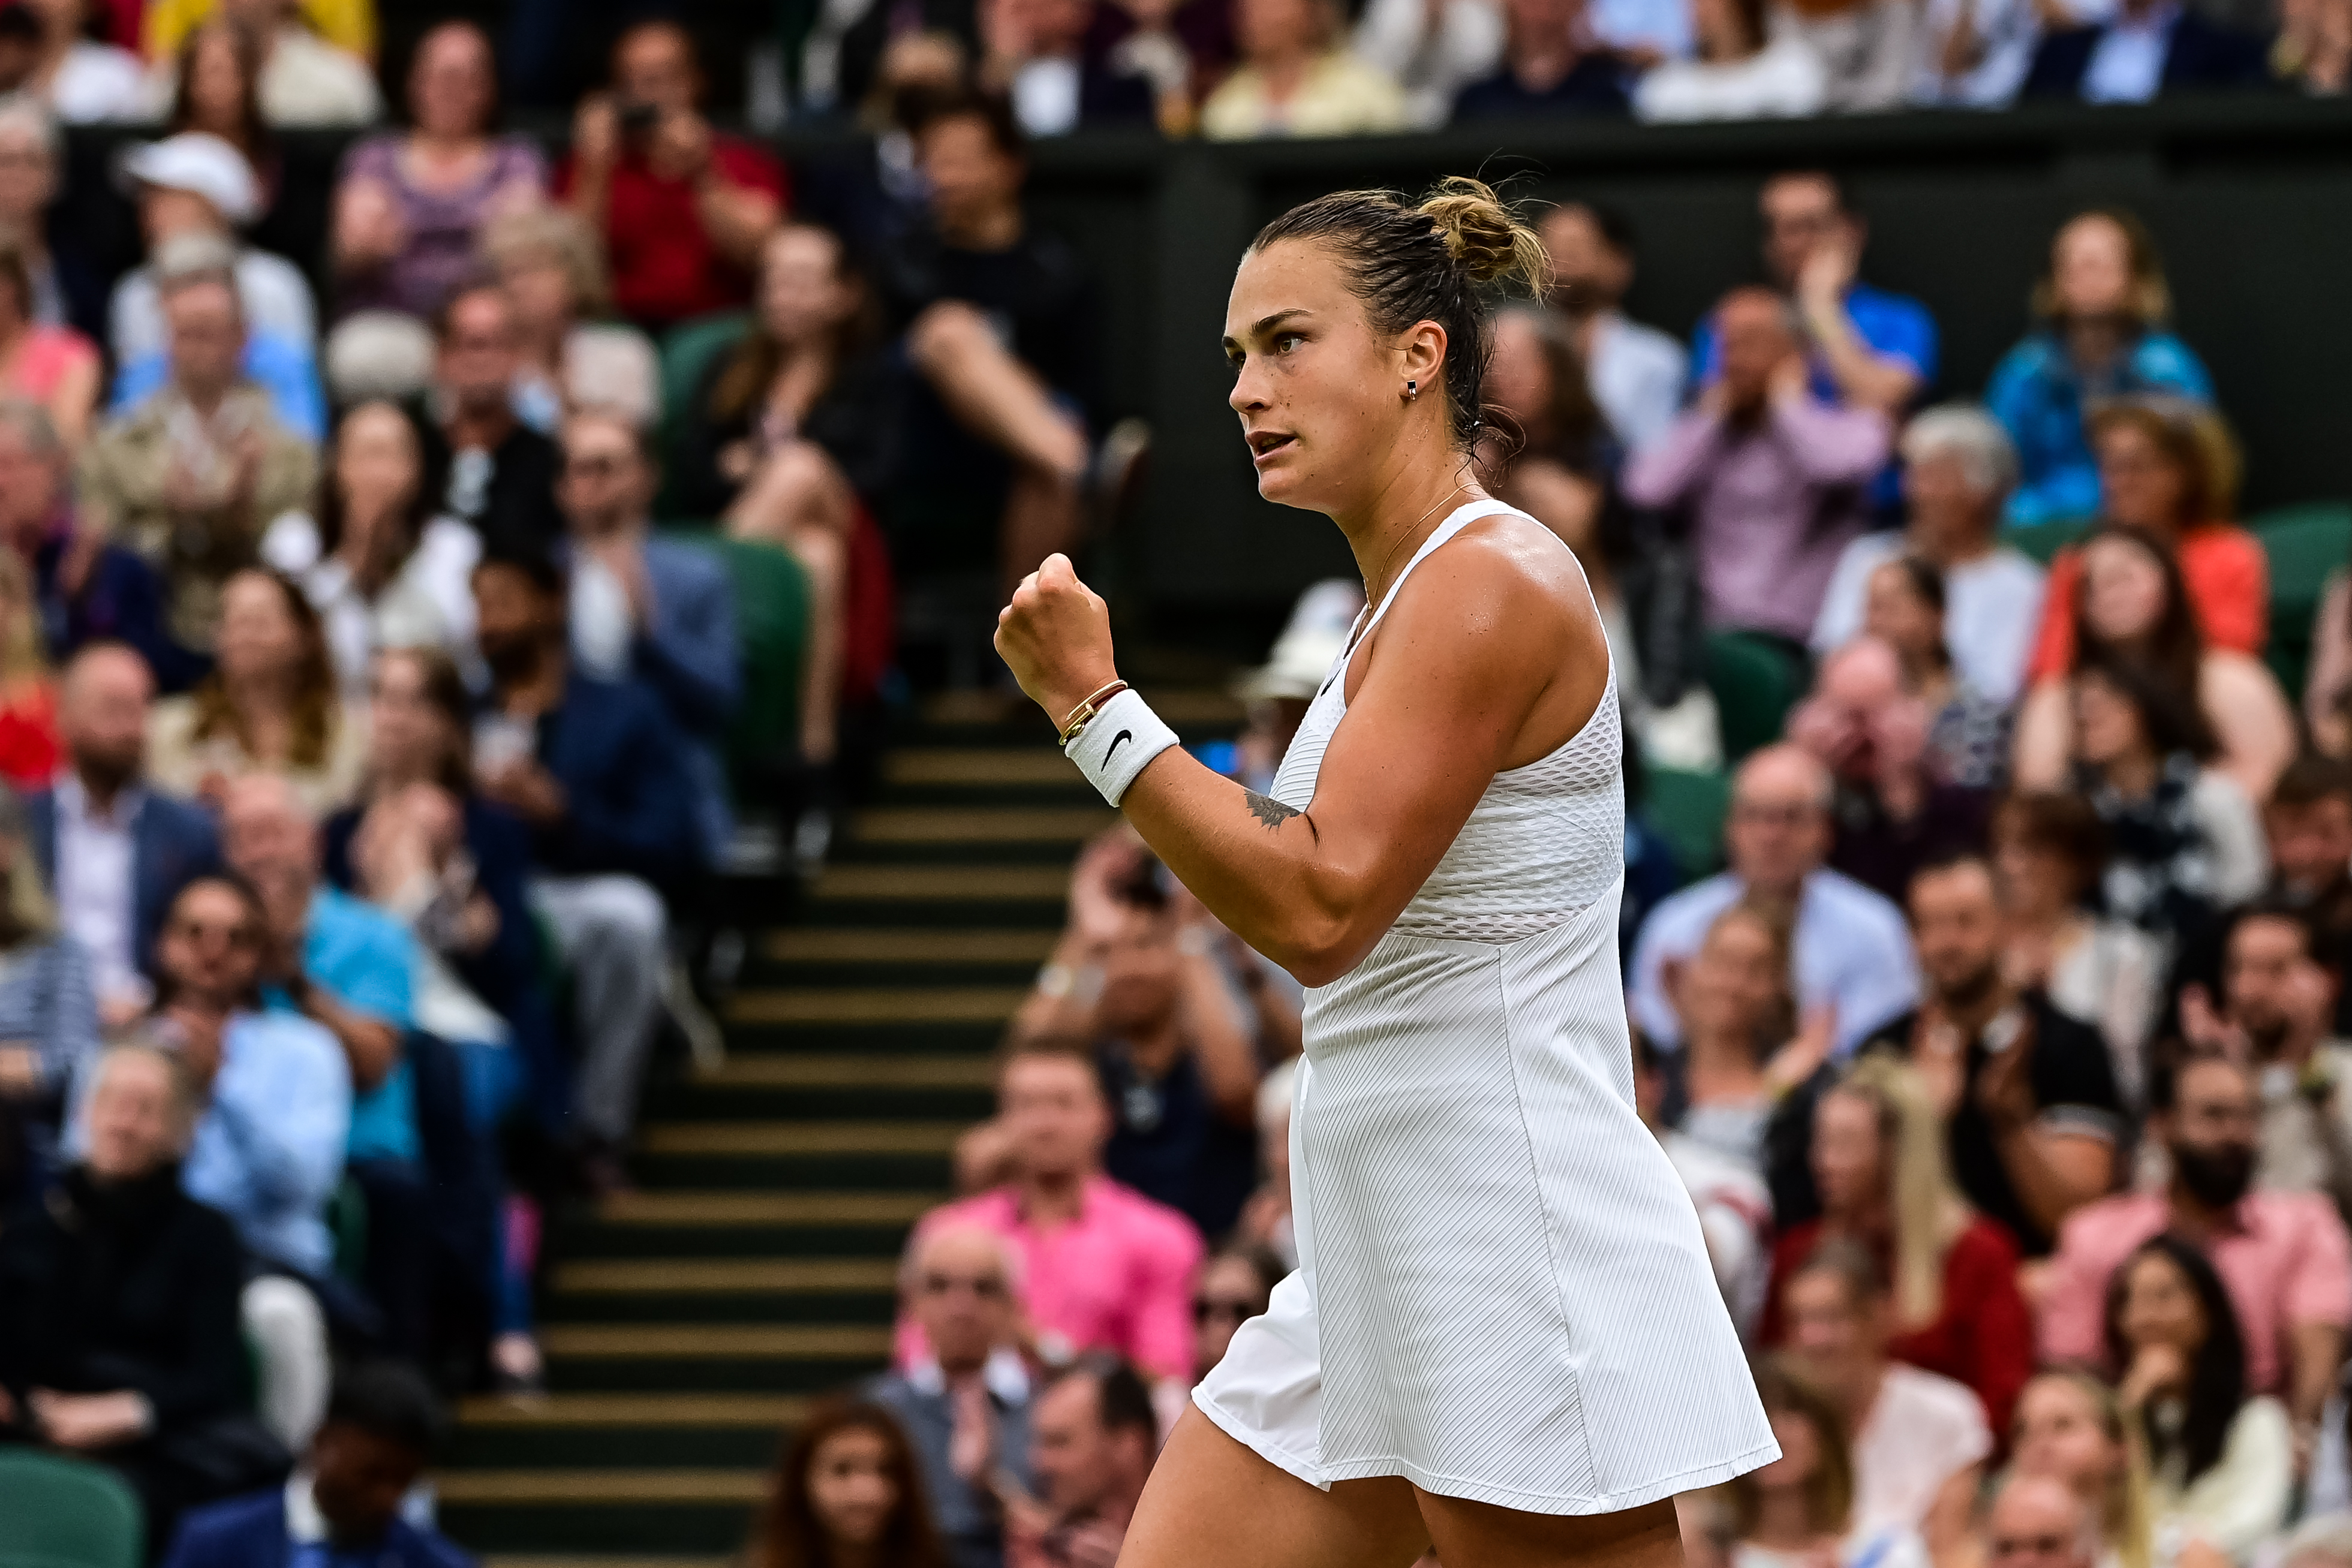 Aryna Sabalenka of Belarus celebrates during her match against Ons Jabeur of Tunisia in the quarter finals of the ladies singles during Day Eight of The Championships - Wimbledon 2021 at All England Lawn Tennis and Croquet Club on July 06, 2021 in London, England.